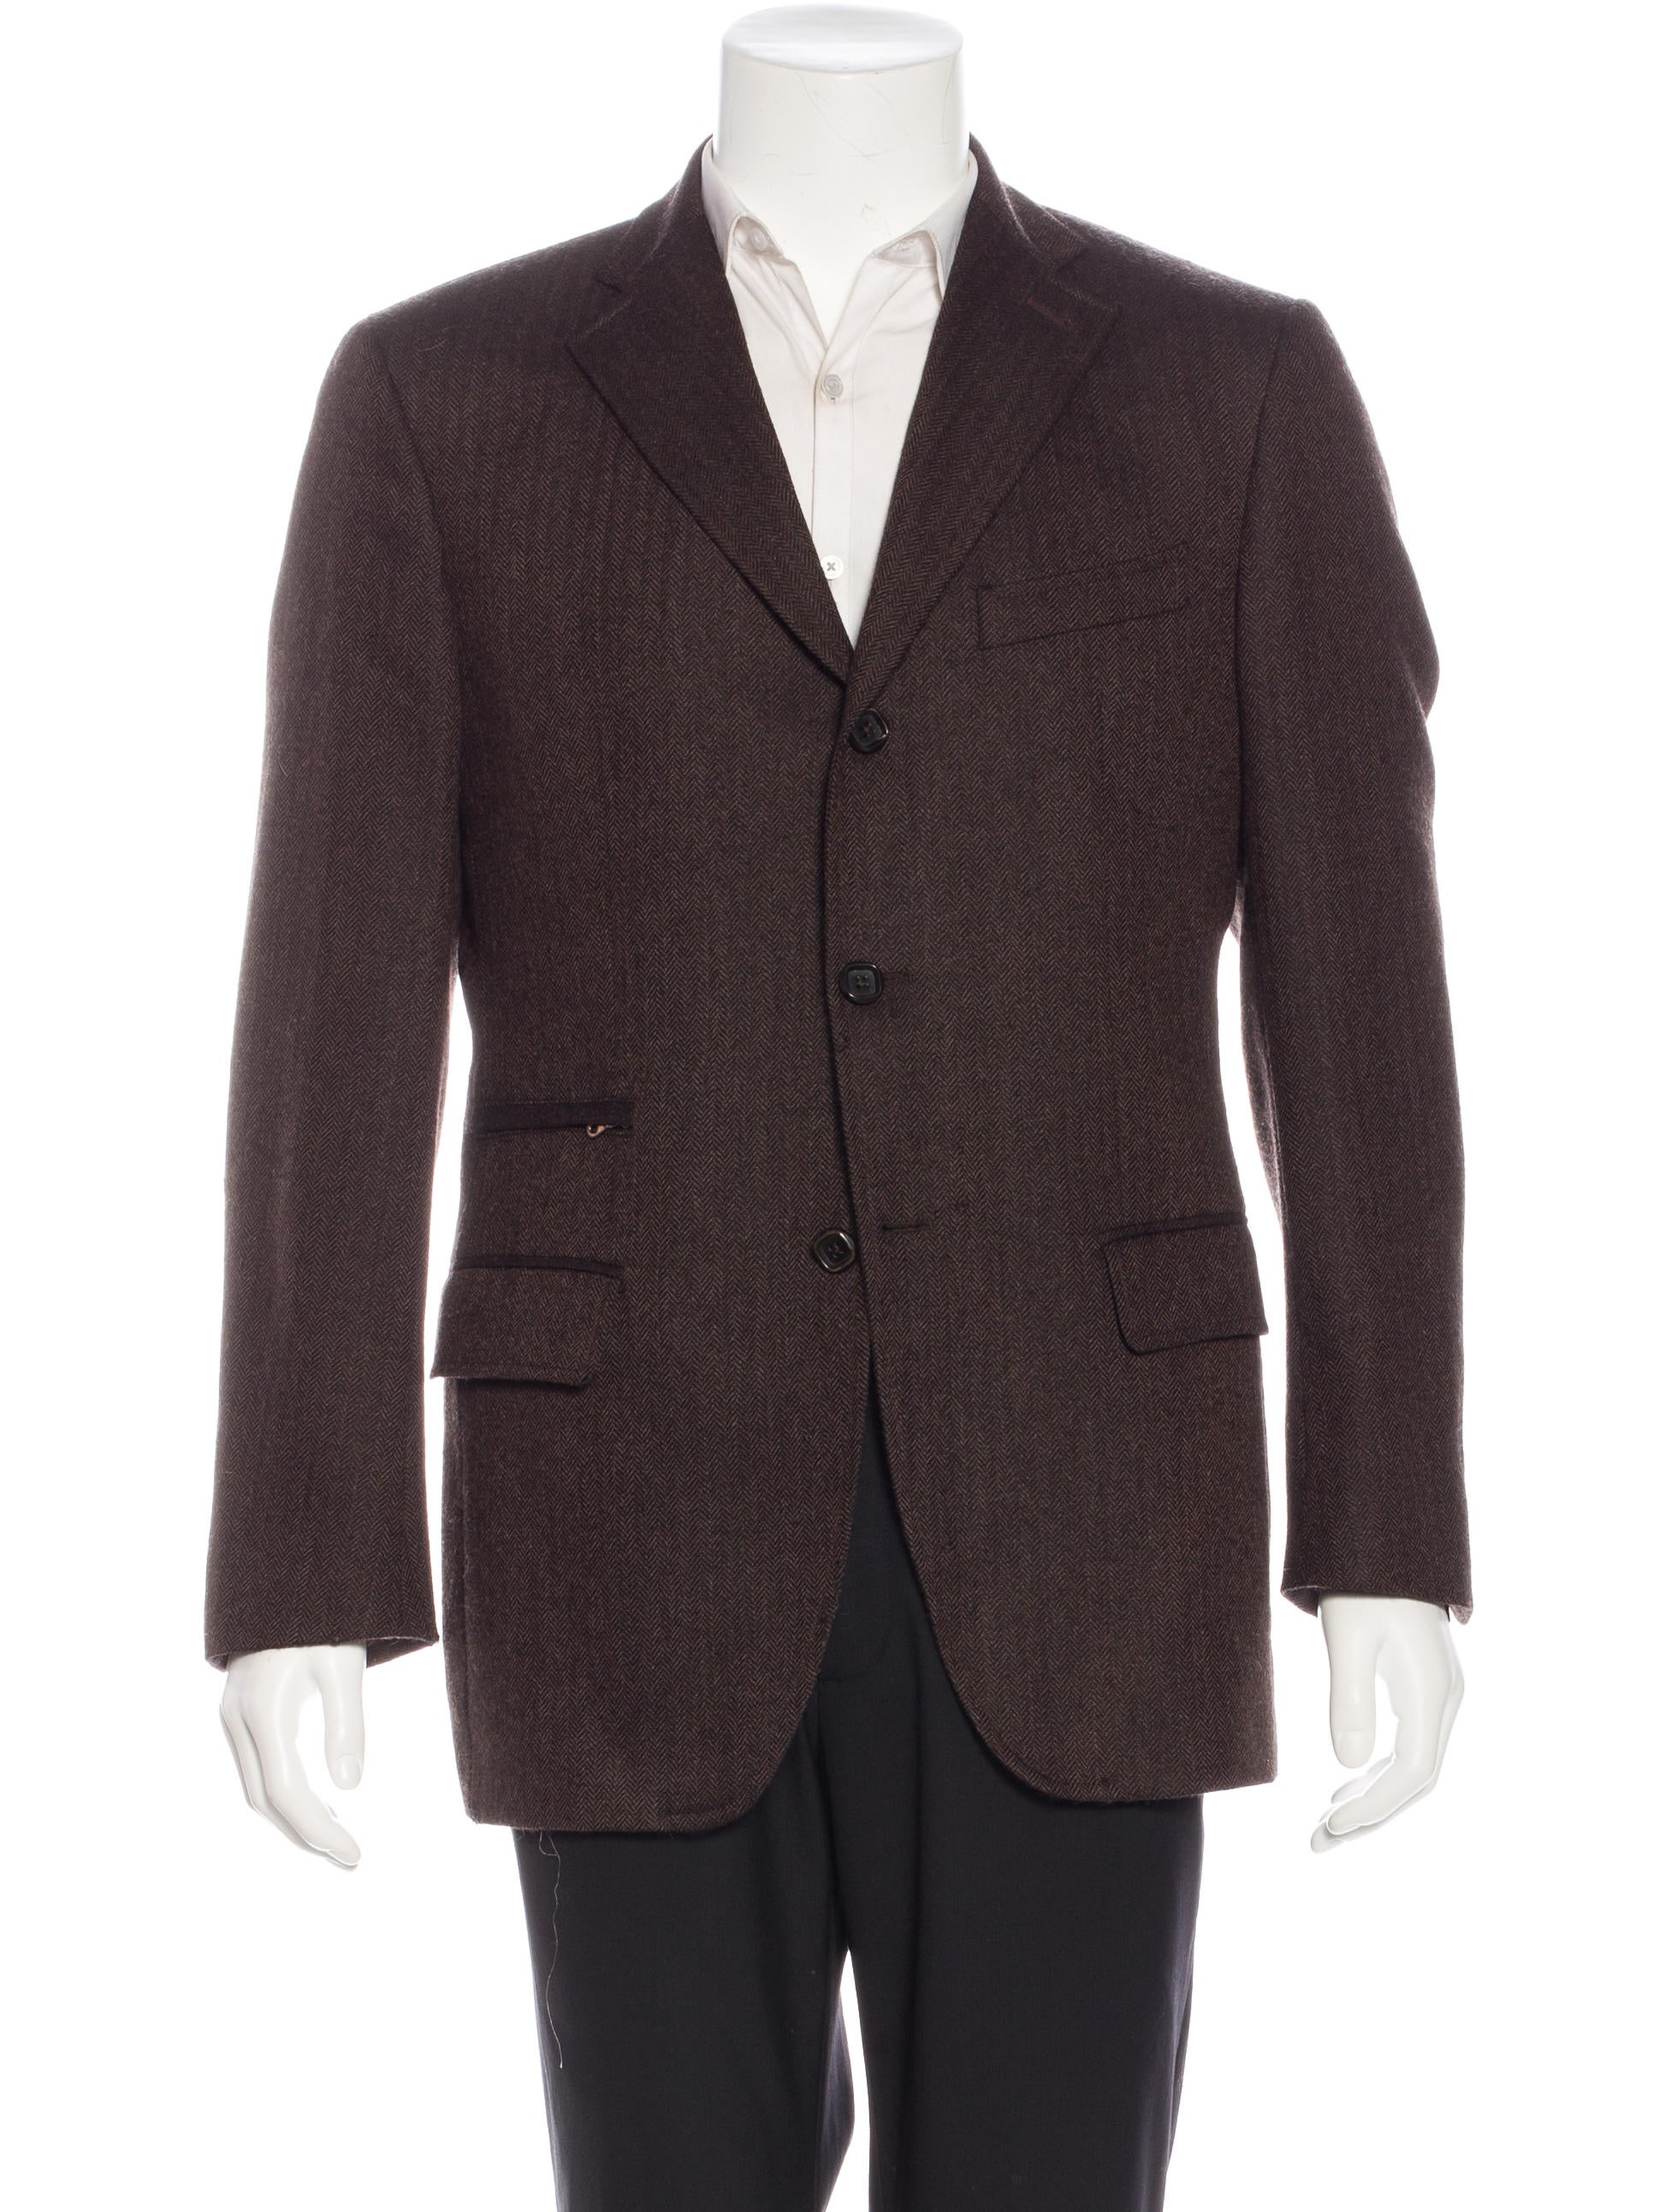 You searched for: wool sports jacket! Etsy is the home to thousands of handmade, vintage, and one-of-a-kind products and gifts related to your search. No matter what you're looking for or where you are in the world, our global marketplace of sellers can help you find unique and affordable options. Let's get started!